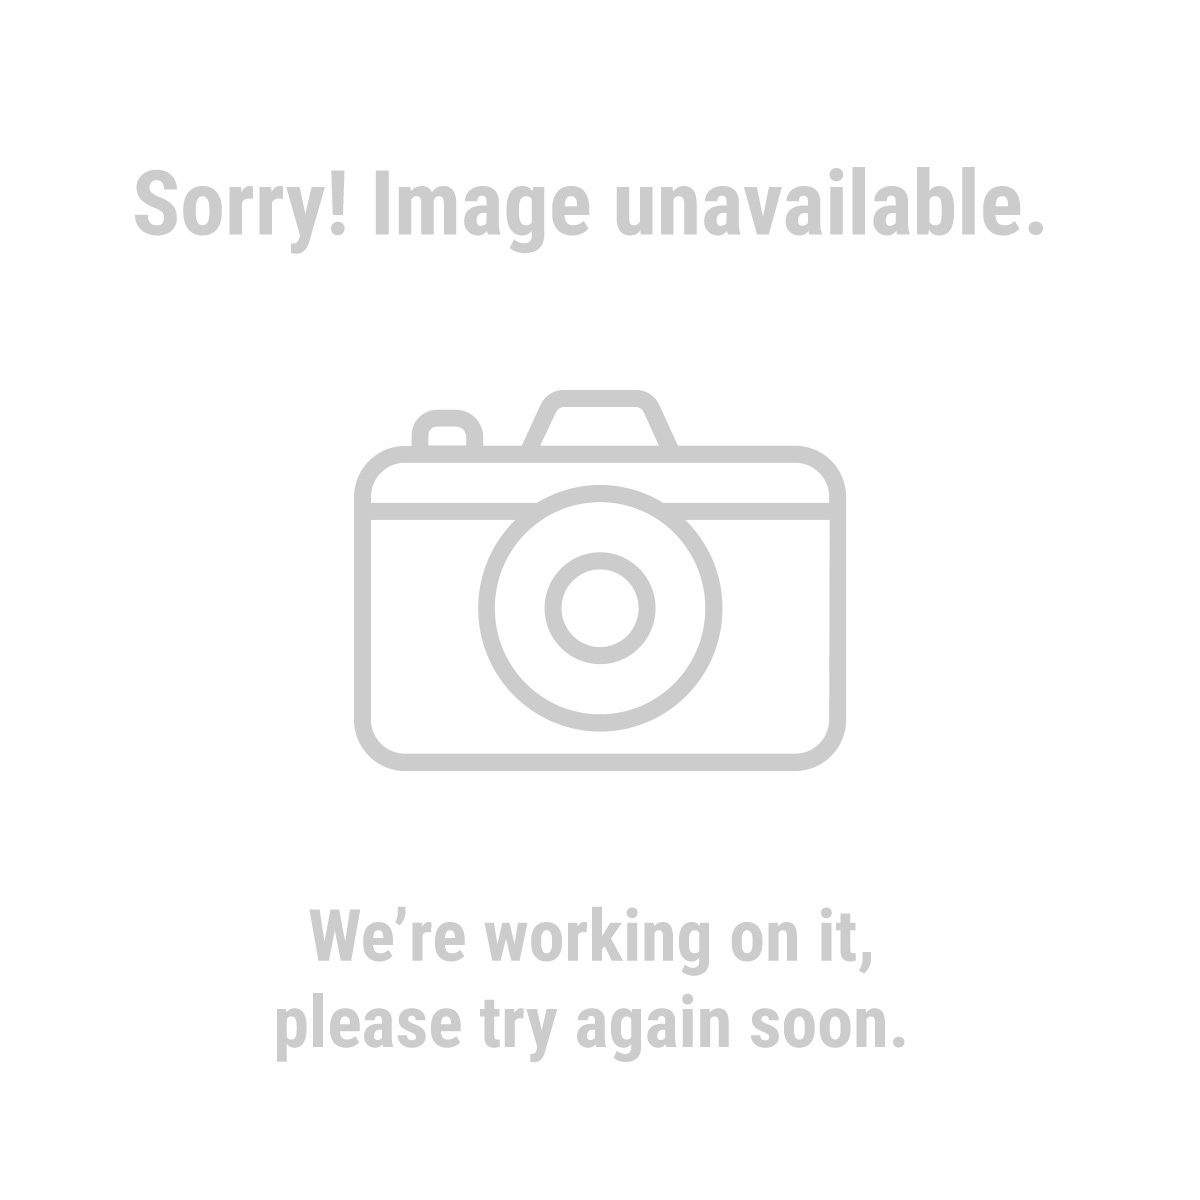 Groovy 8 In General Purpose Bench Grinding Wheel Alphanode Cool Chair Designs And Ideas Alphanodeonline